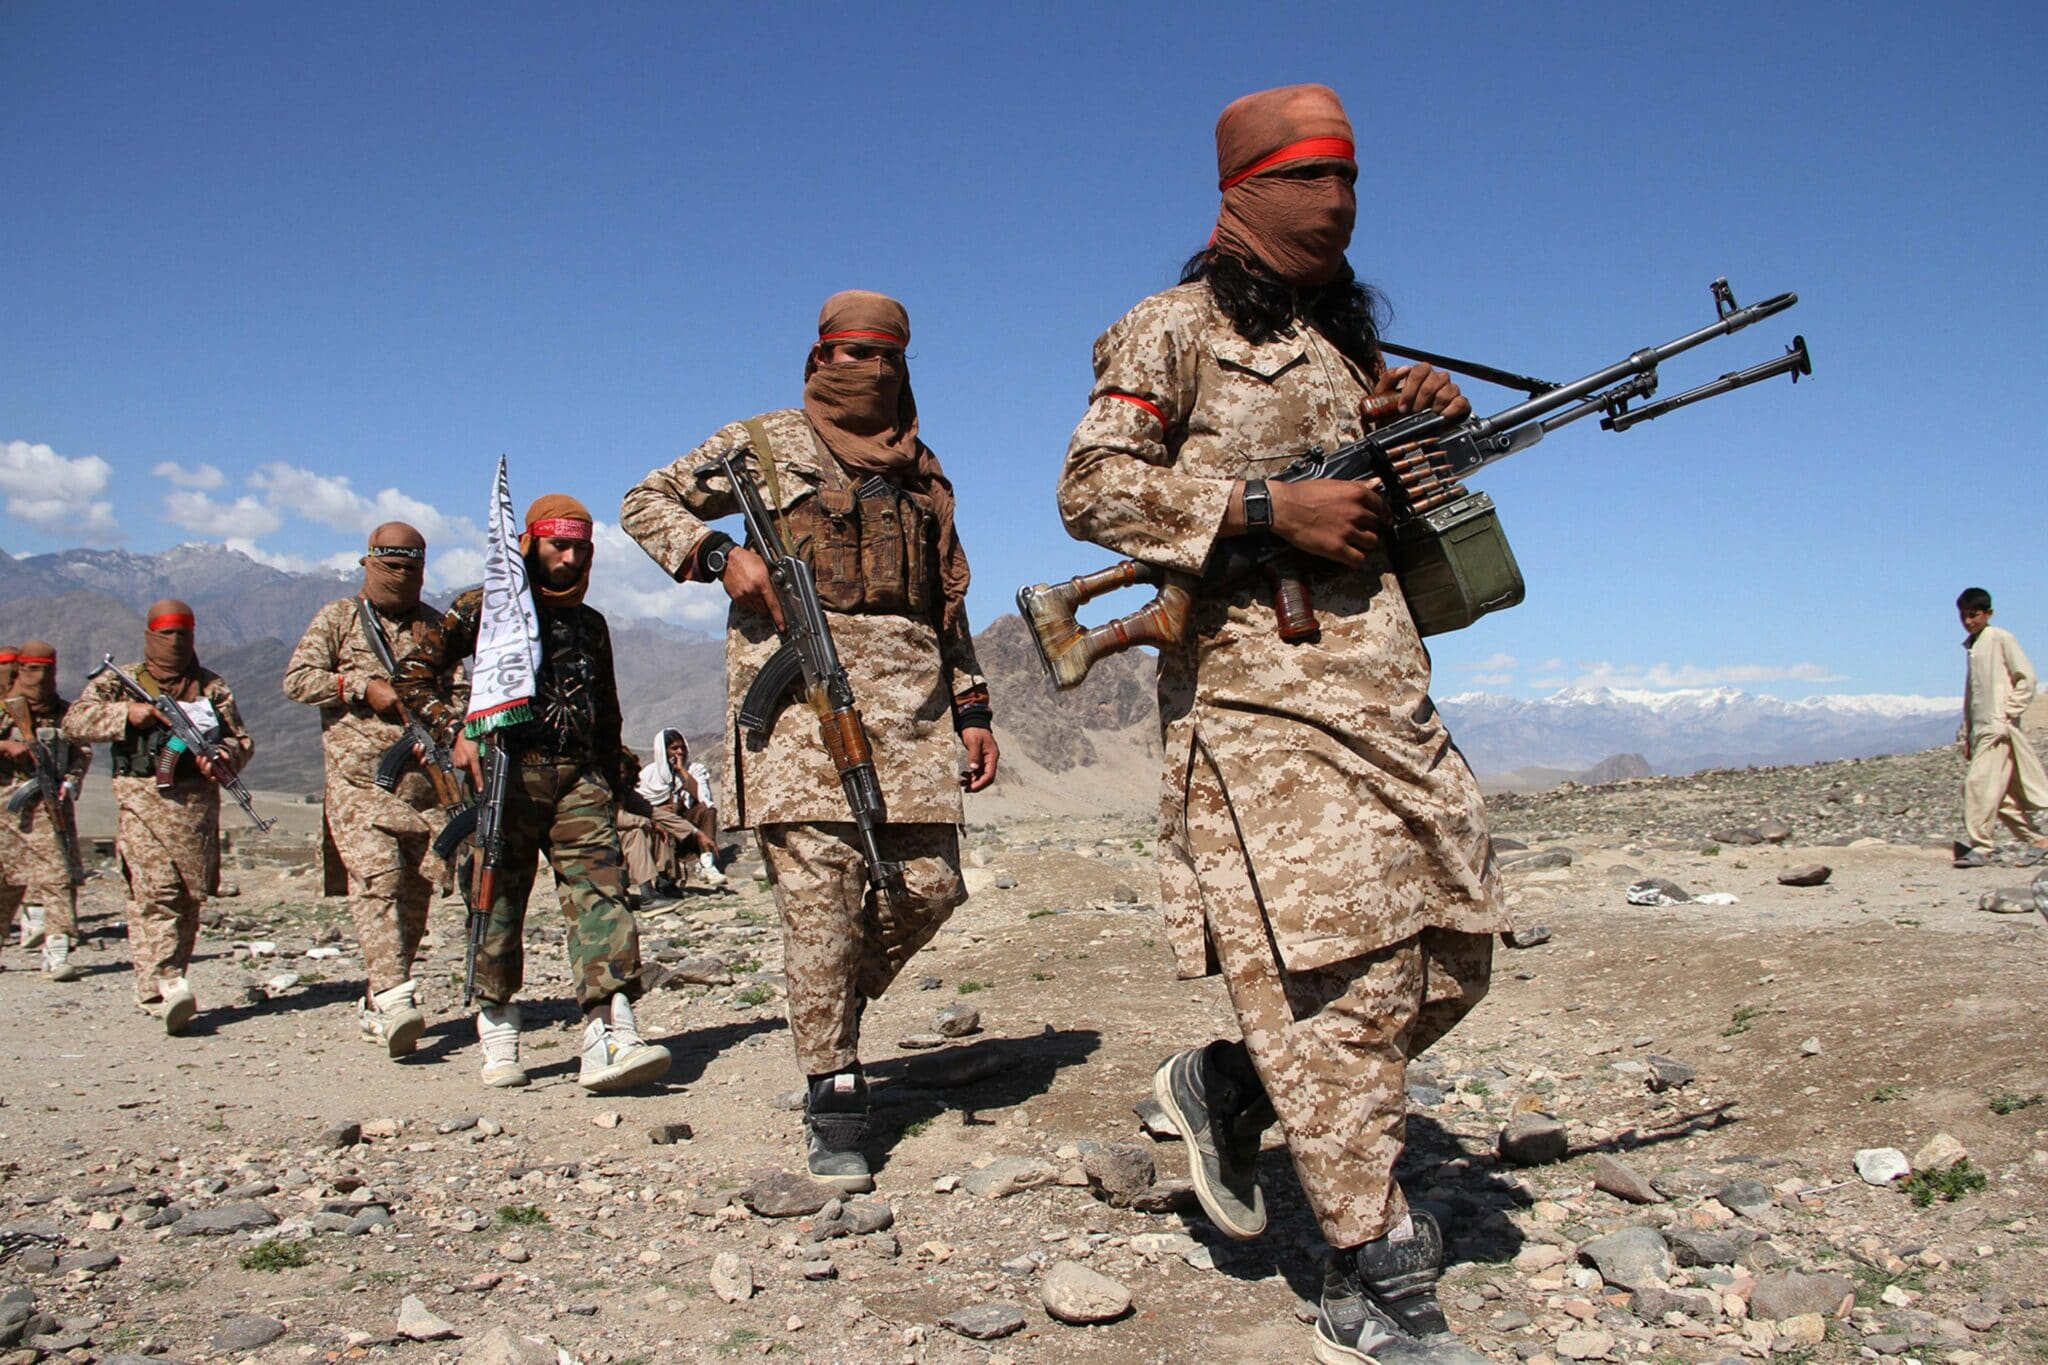 taliban scaled - Field Research. Analysis. High-level Advocacy